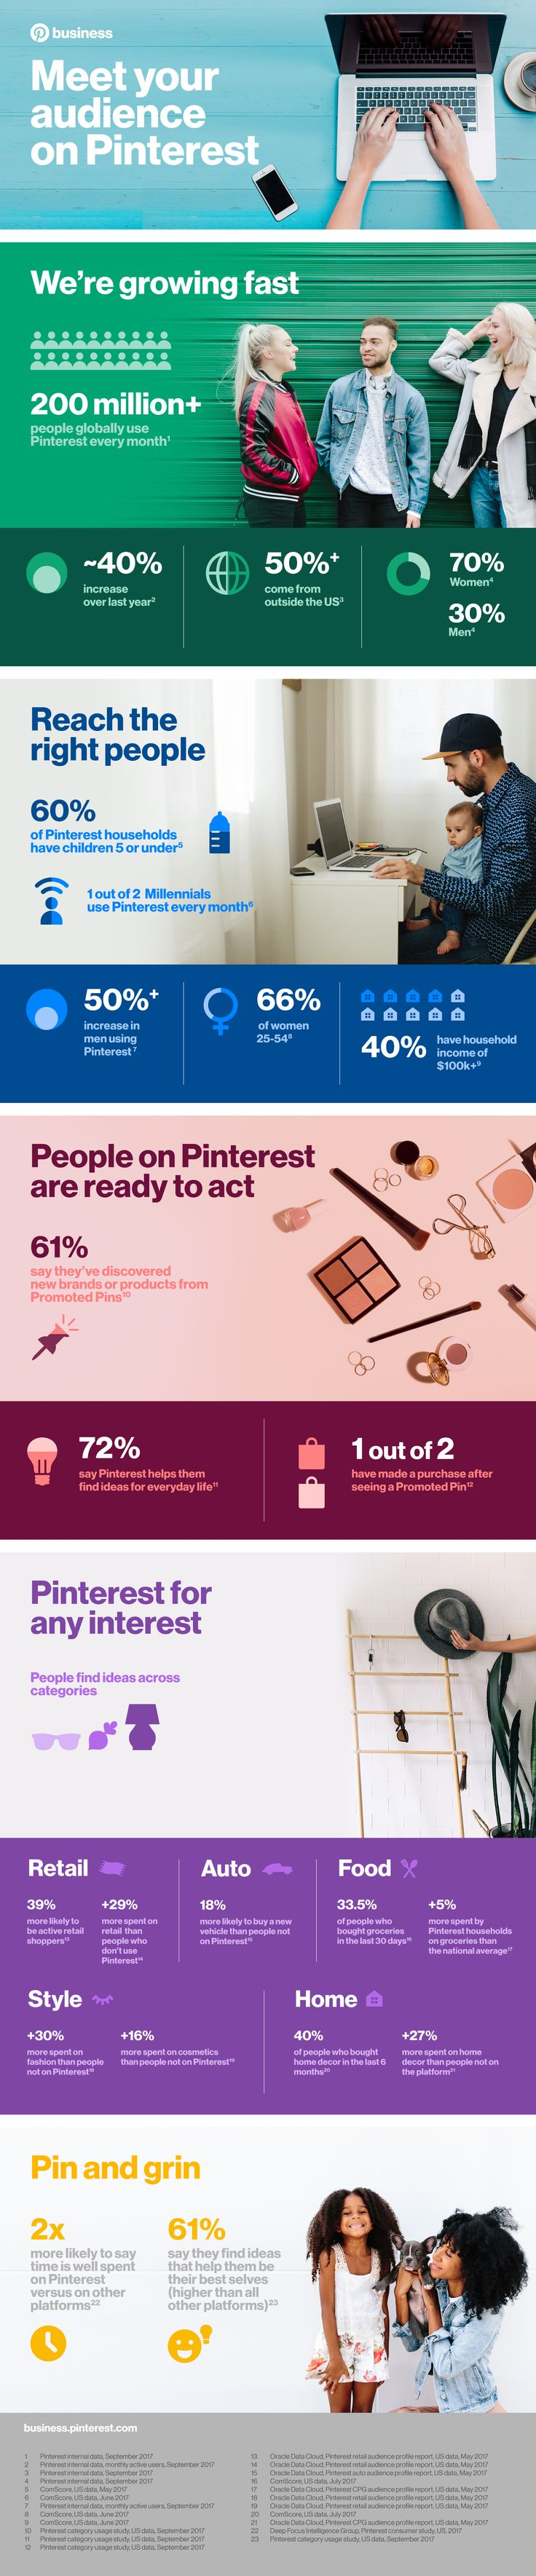 Pinterest Infographic Sep 2017